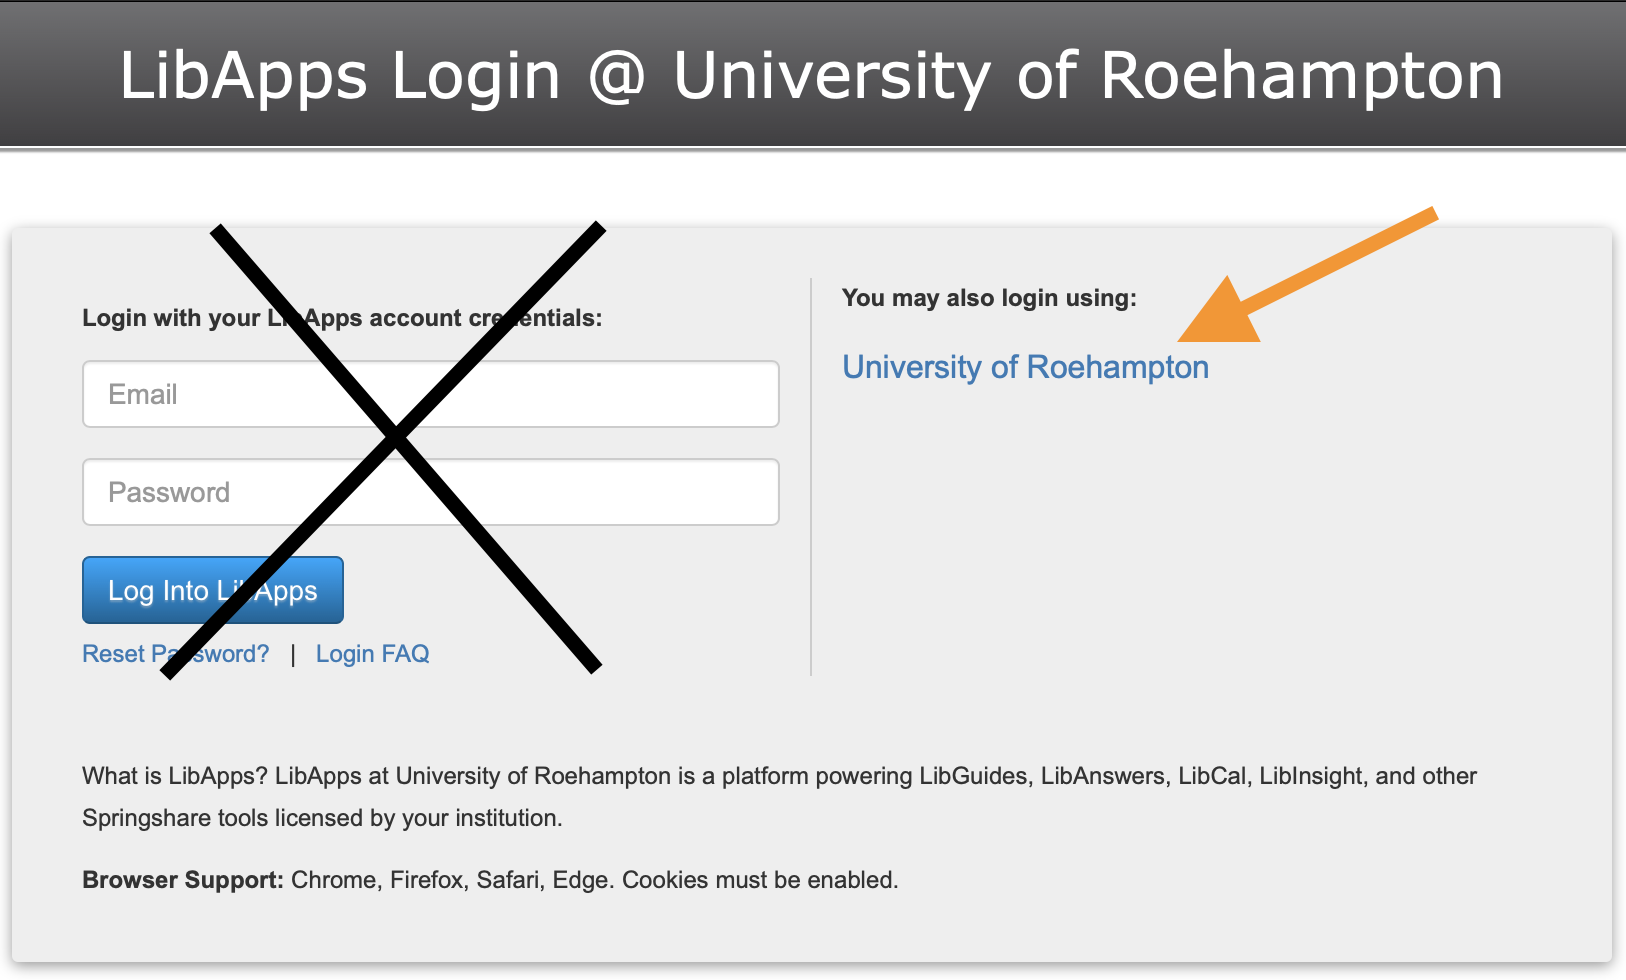 Select the 'University of Roehampton' link to log in using your Roehampton details